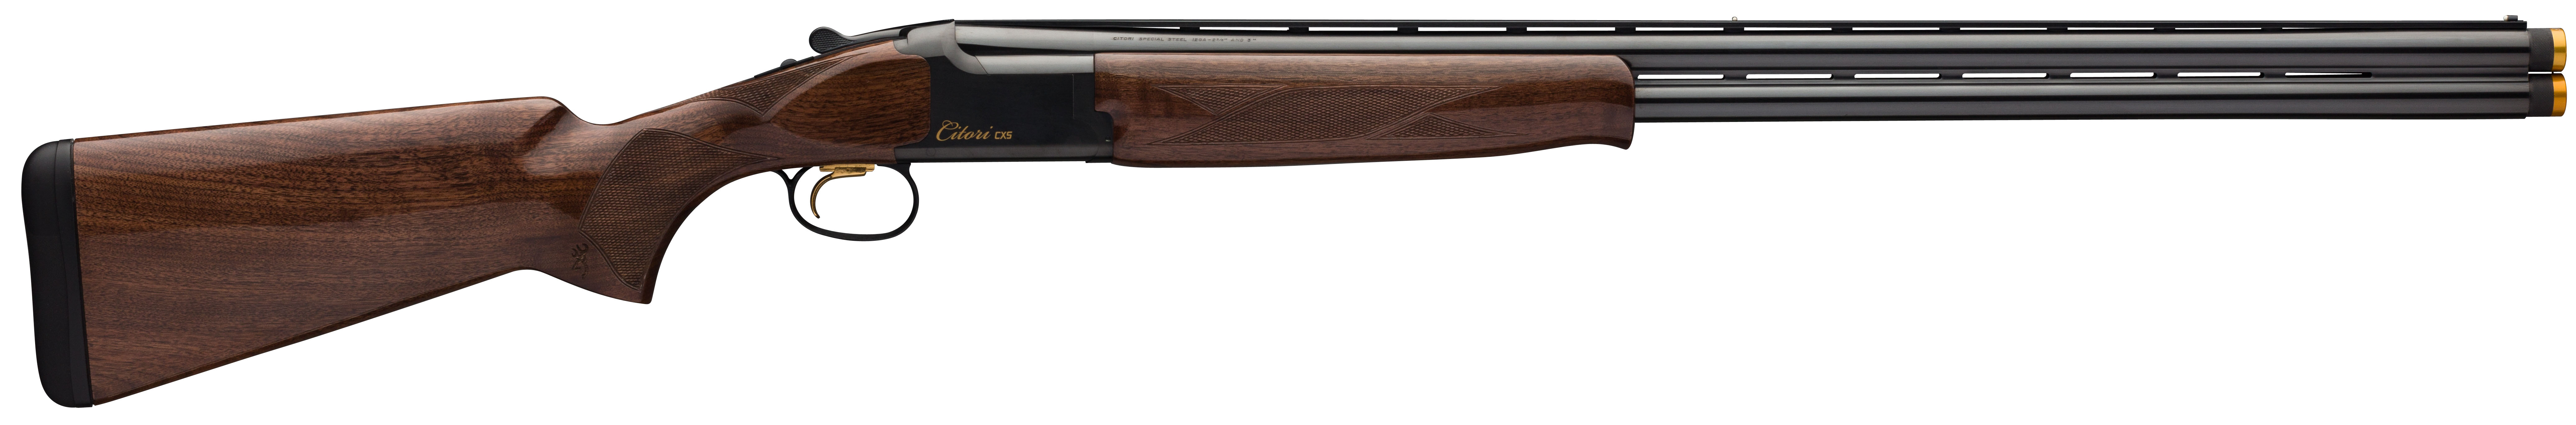 Browning Citori CXS Over/Under Shotgun 3'' 12 Gauge 28'' Blued Steel - Black Walnut